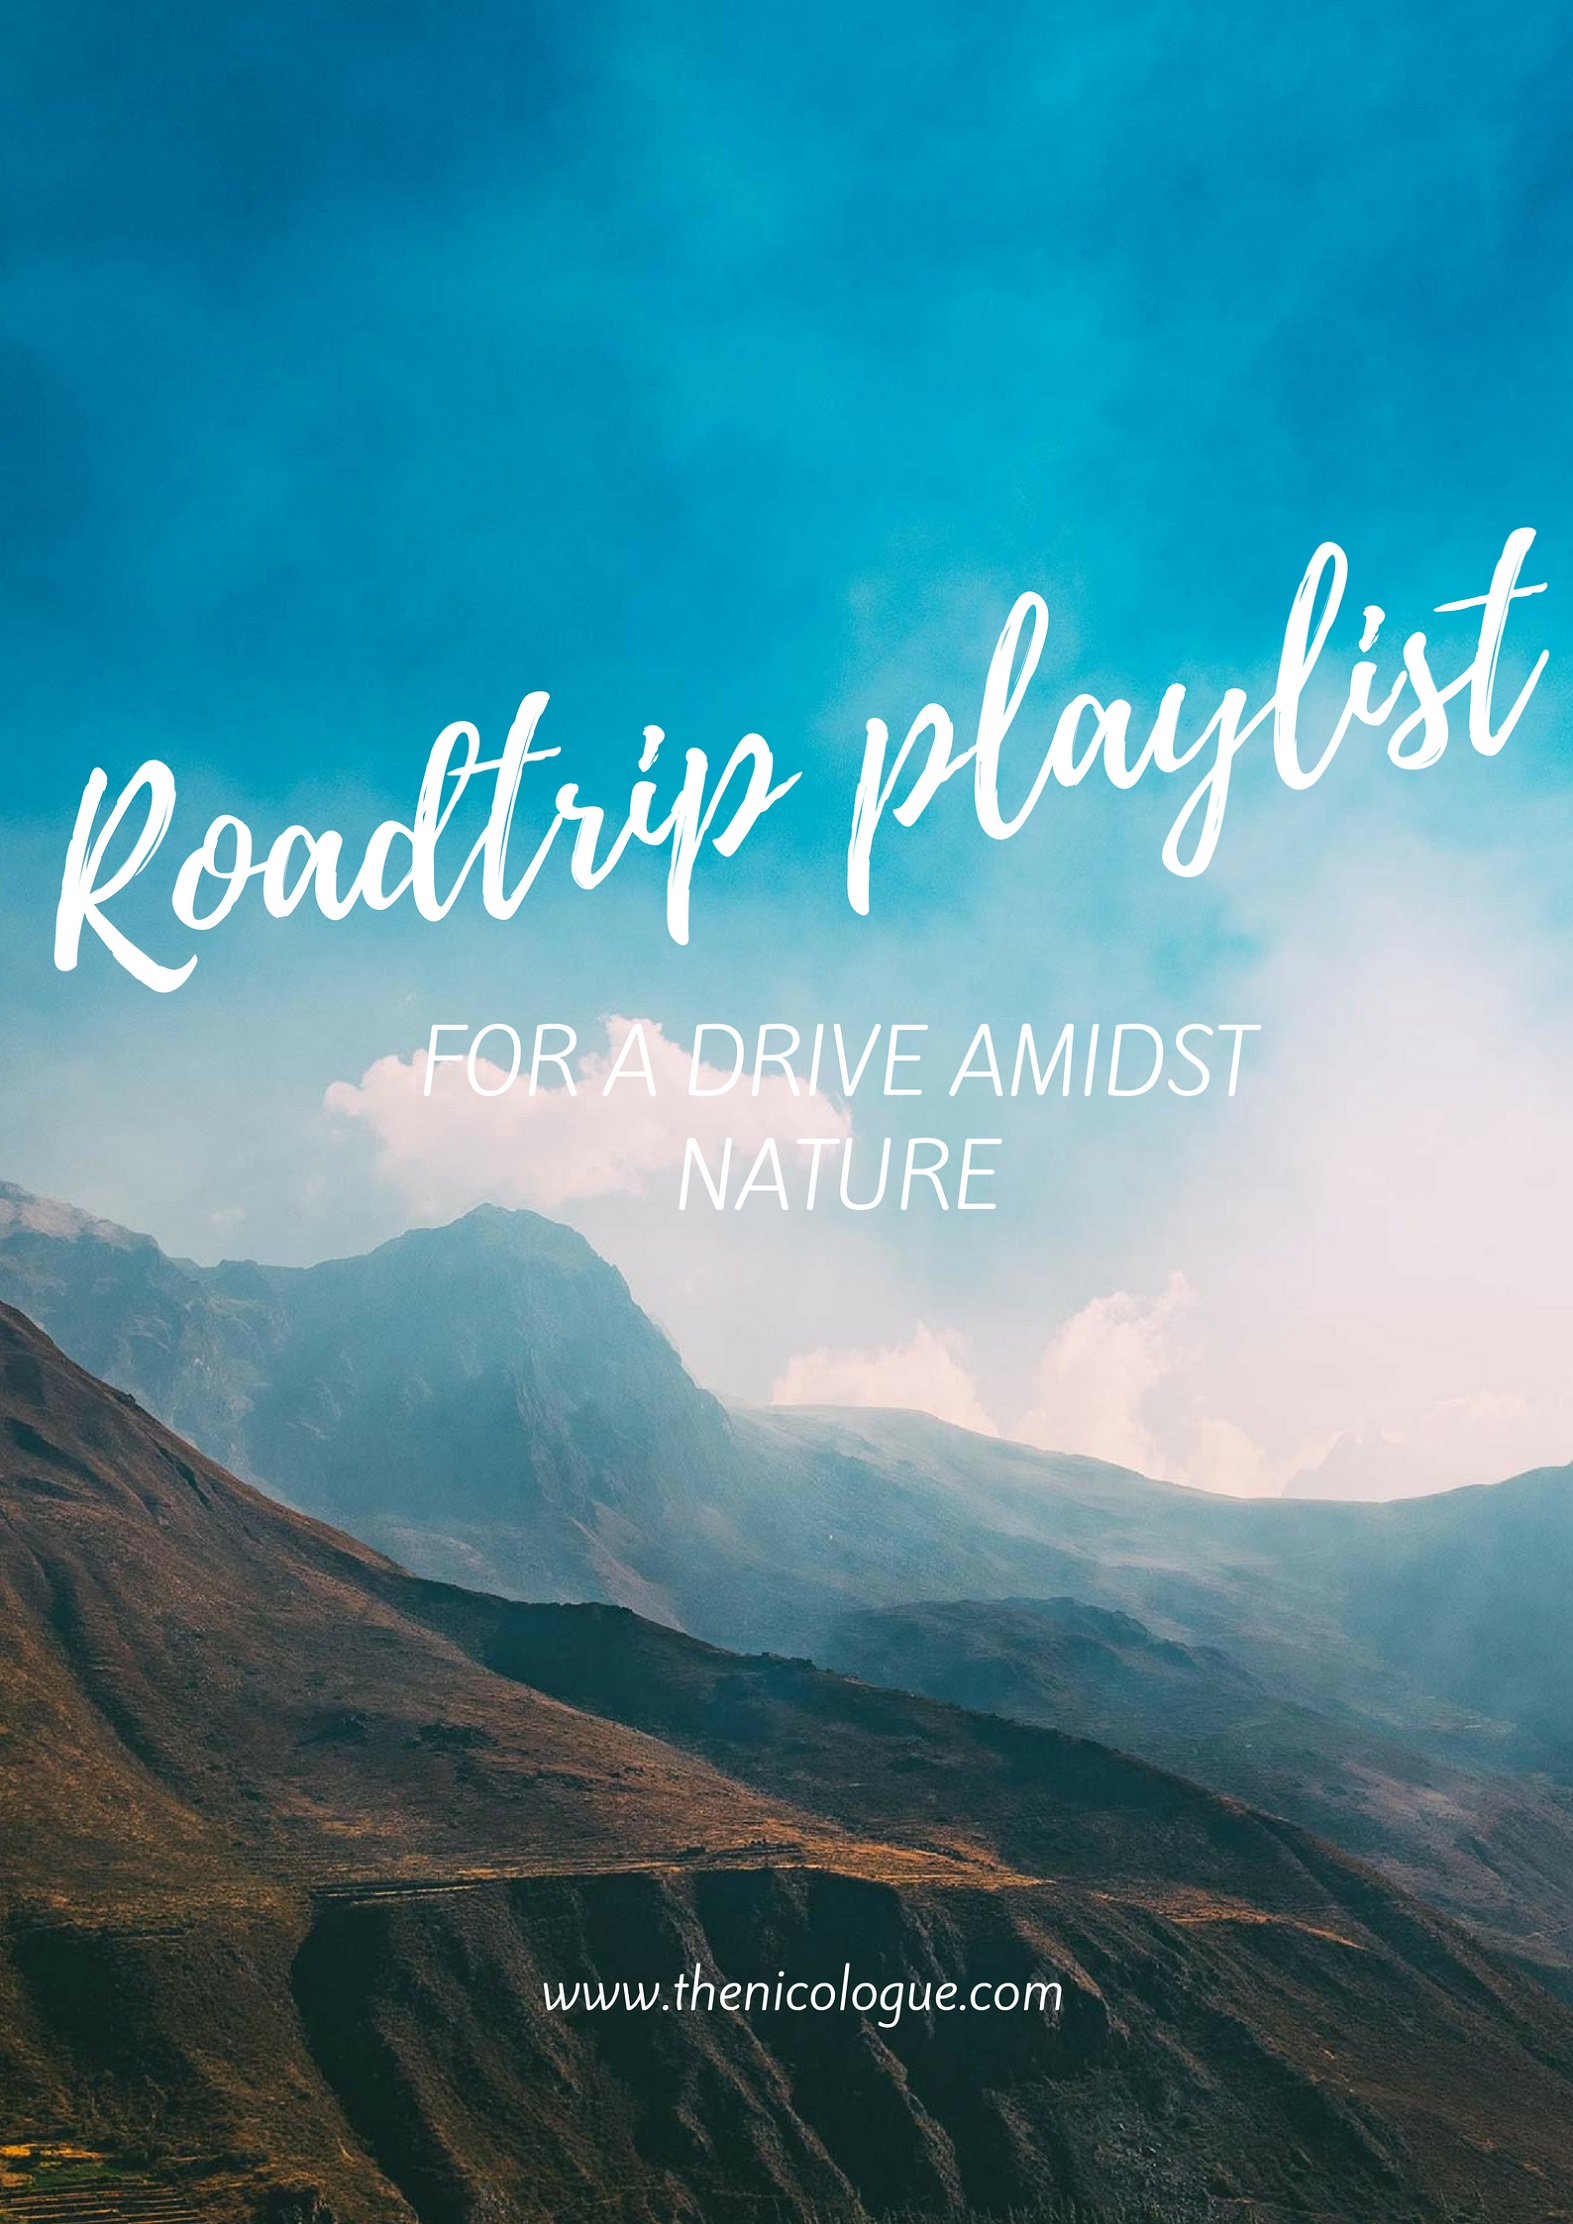 Roadtrip playlist by The Nicologue